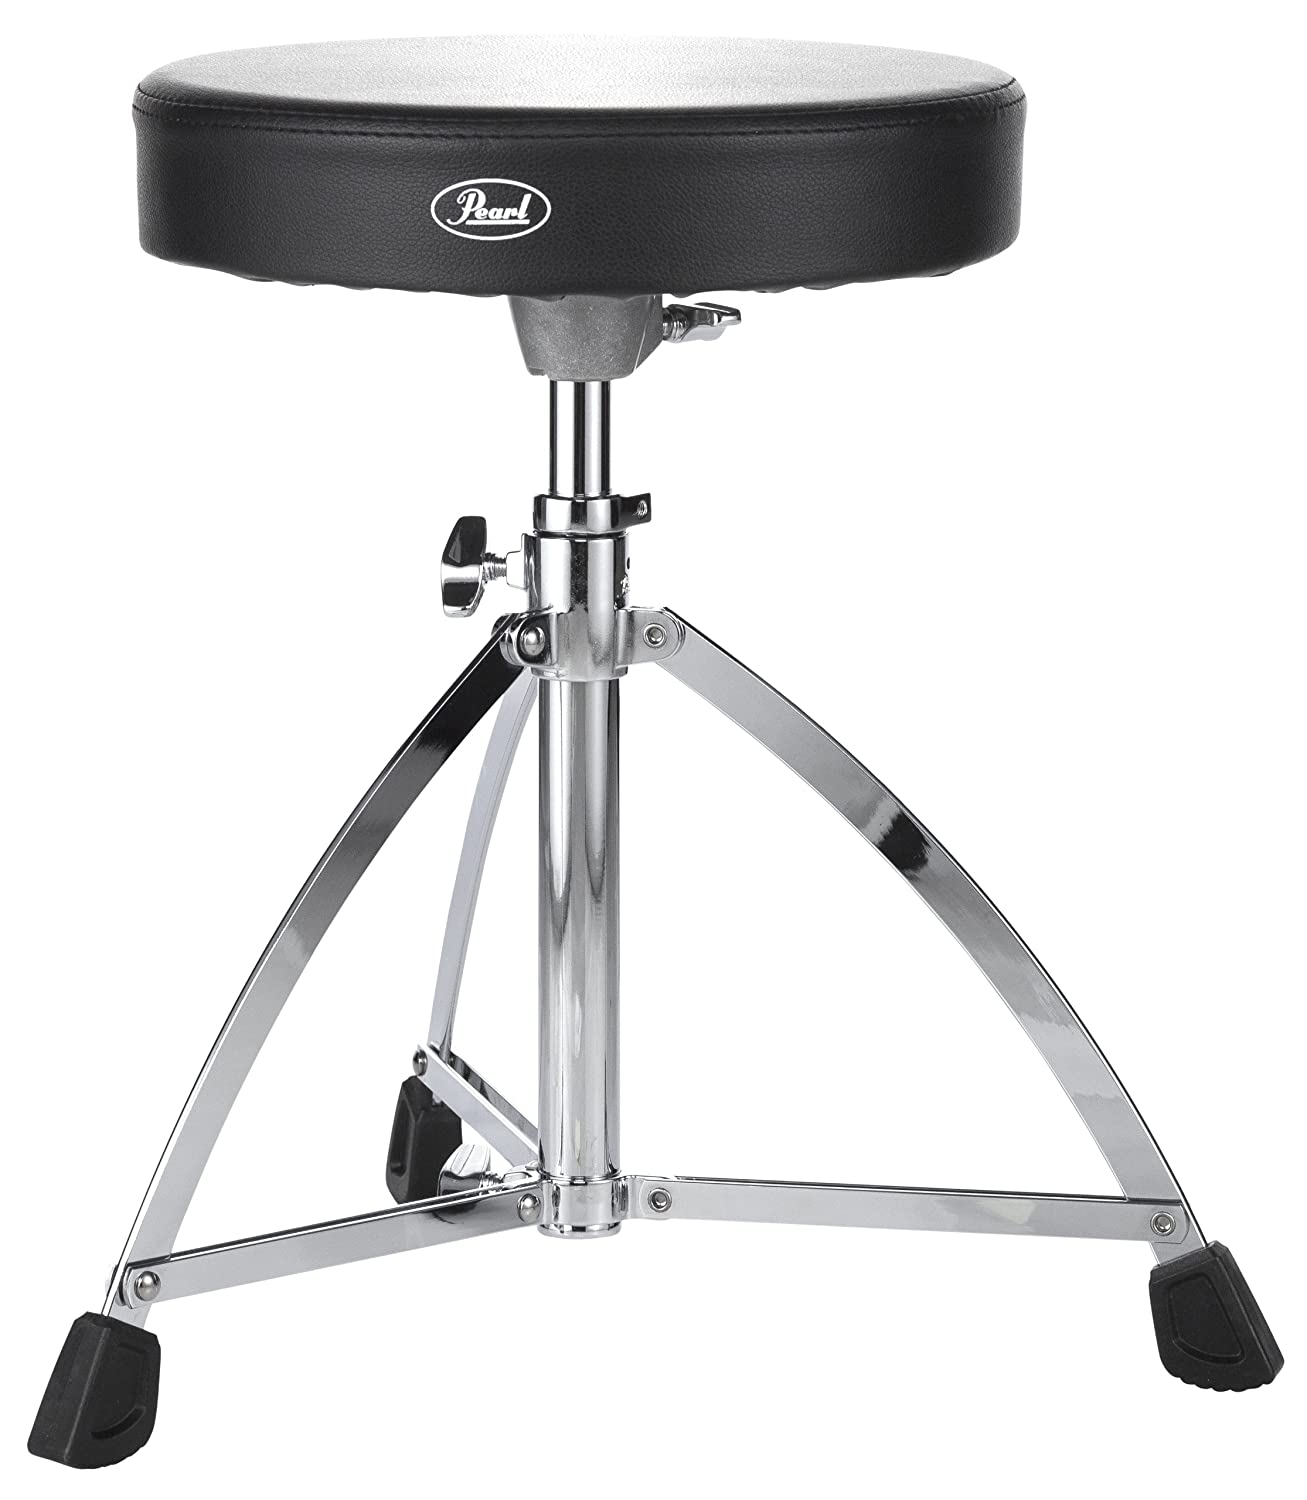 Pearl D730S Throne, Round Cushion Single Braced Legs Pearl Corporation